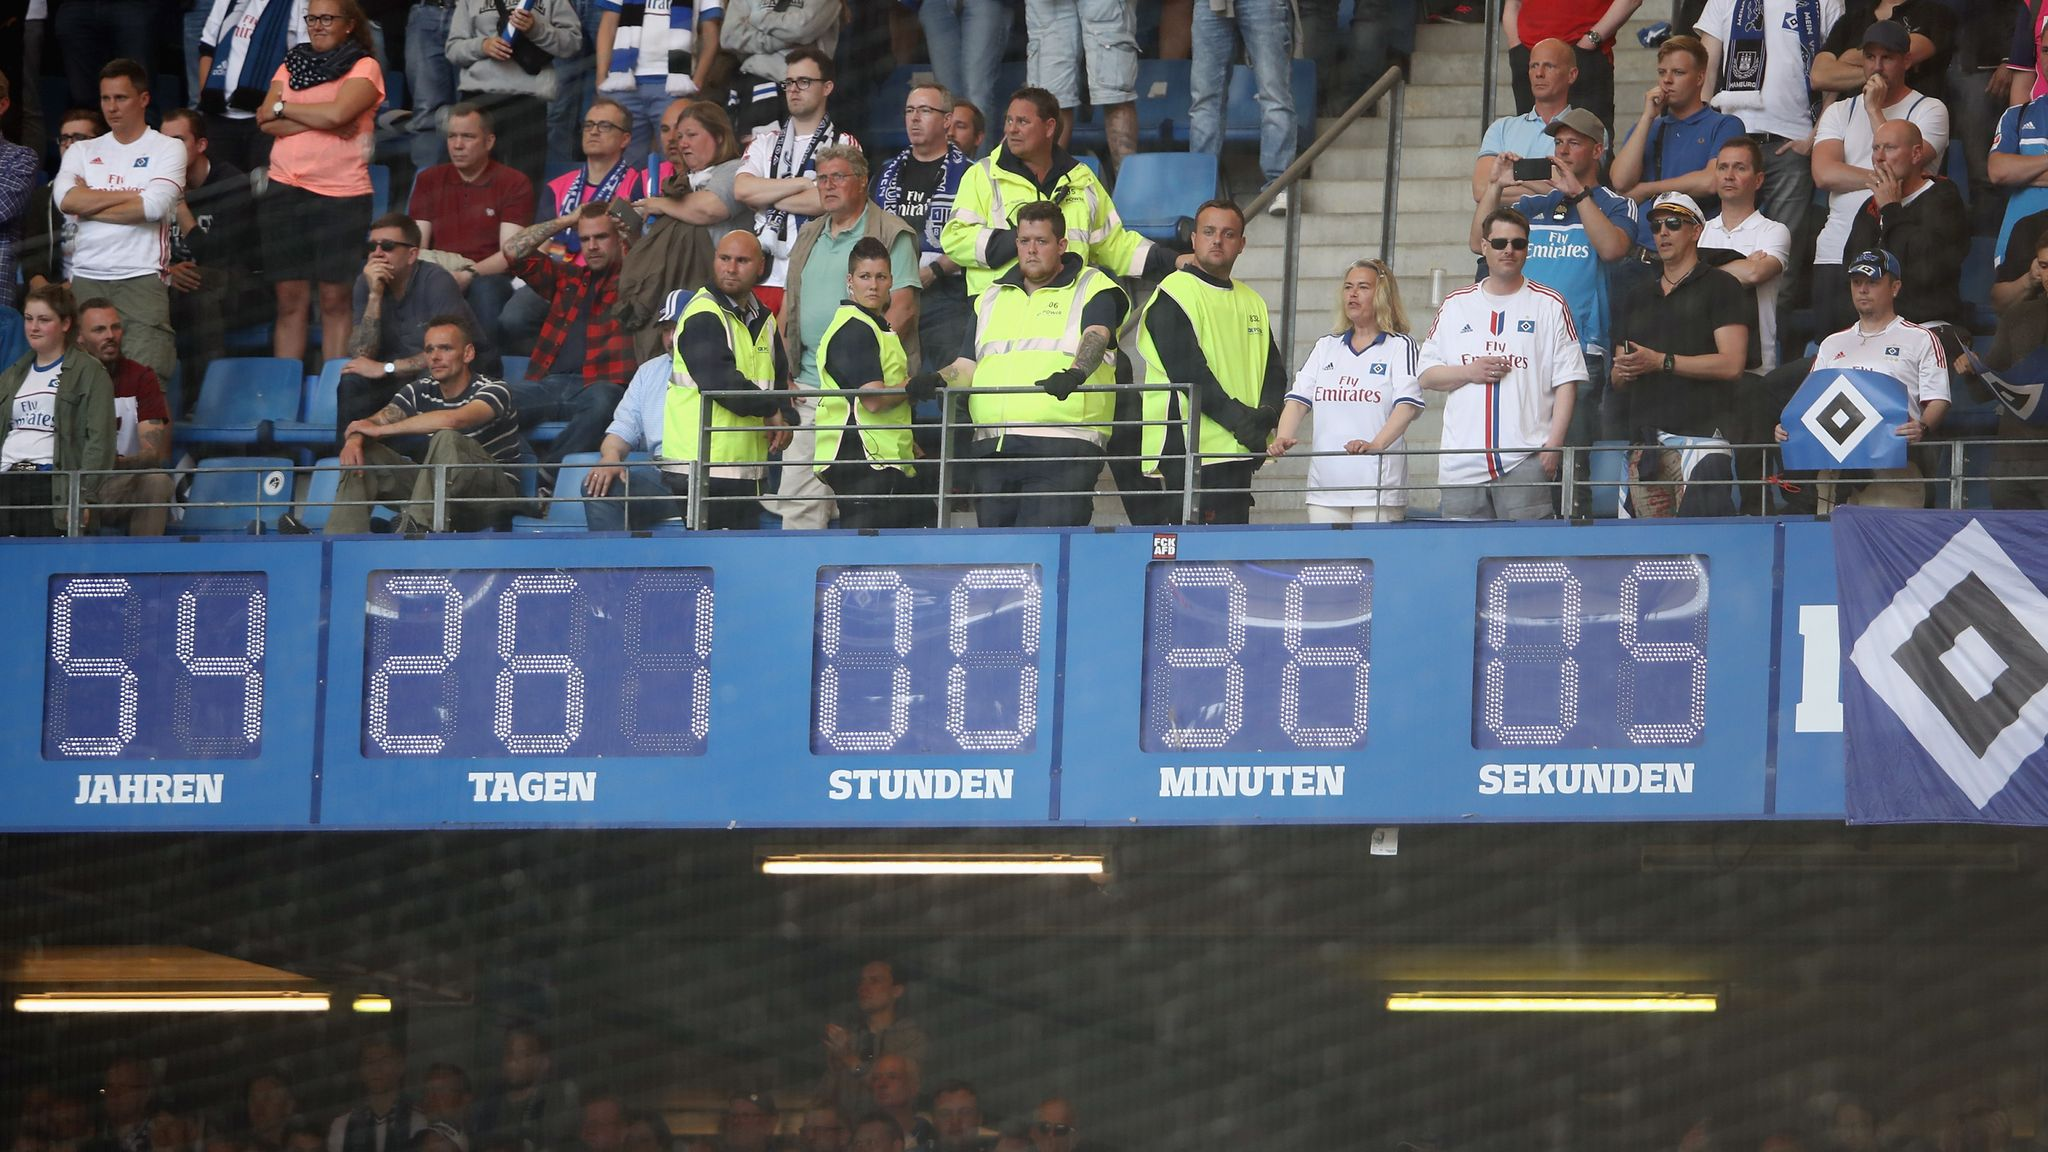 St Pauli vs Hamburg: High stakes in derby clash as rivals